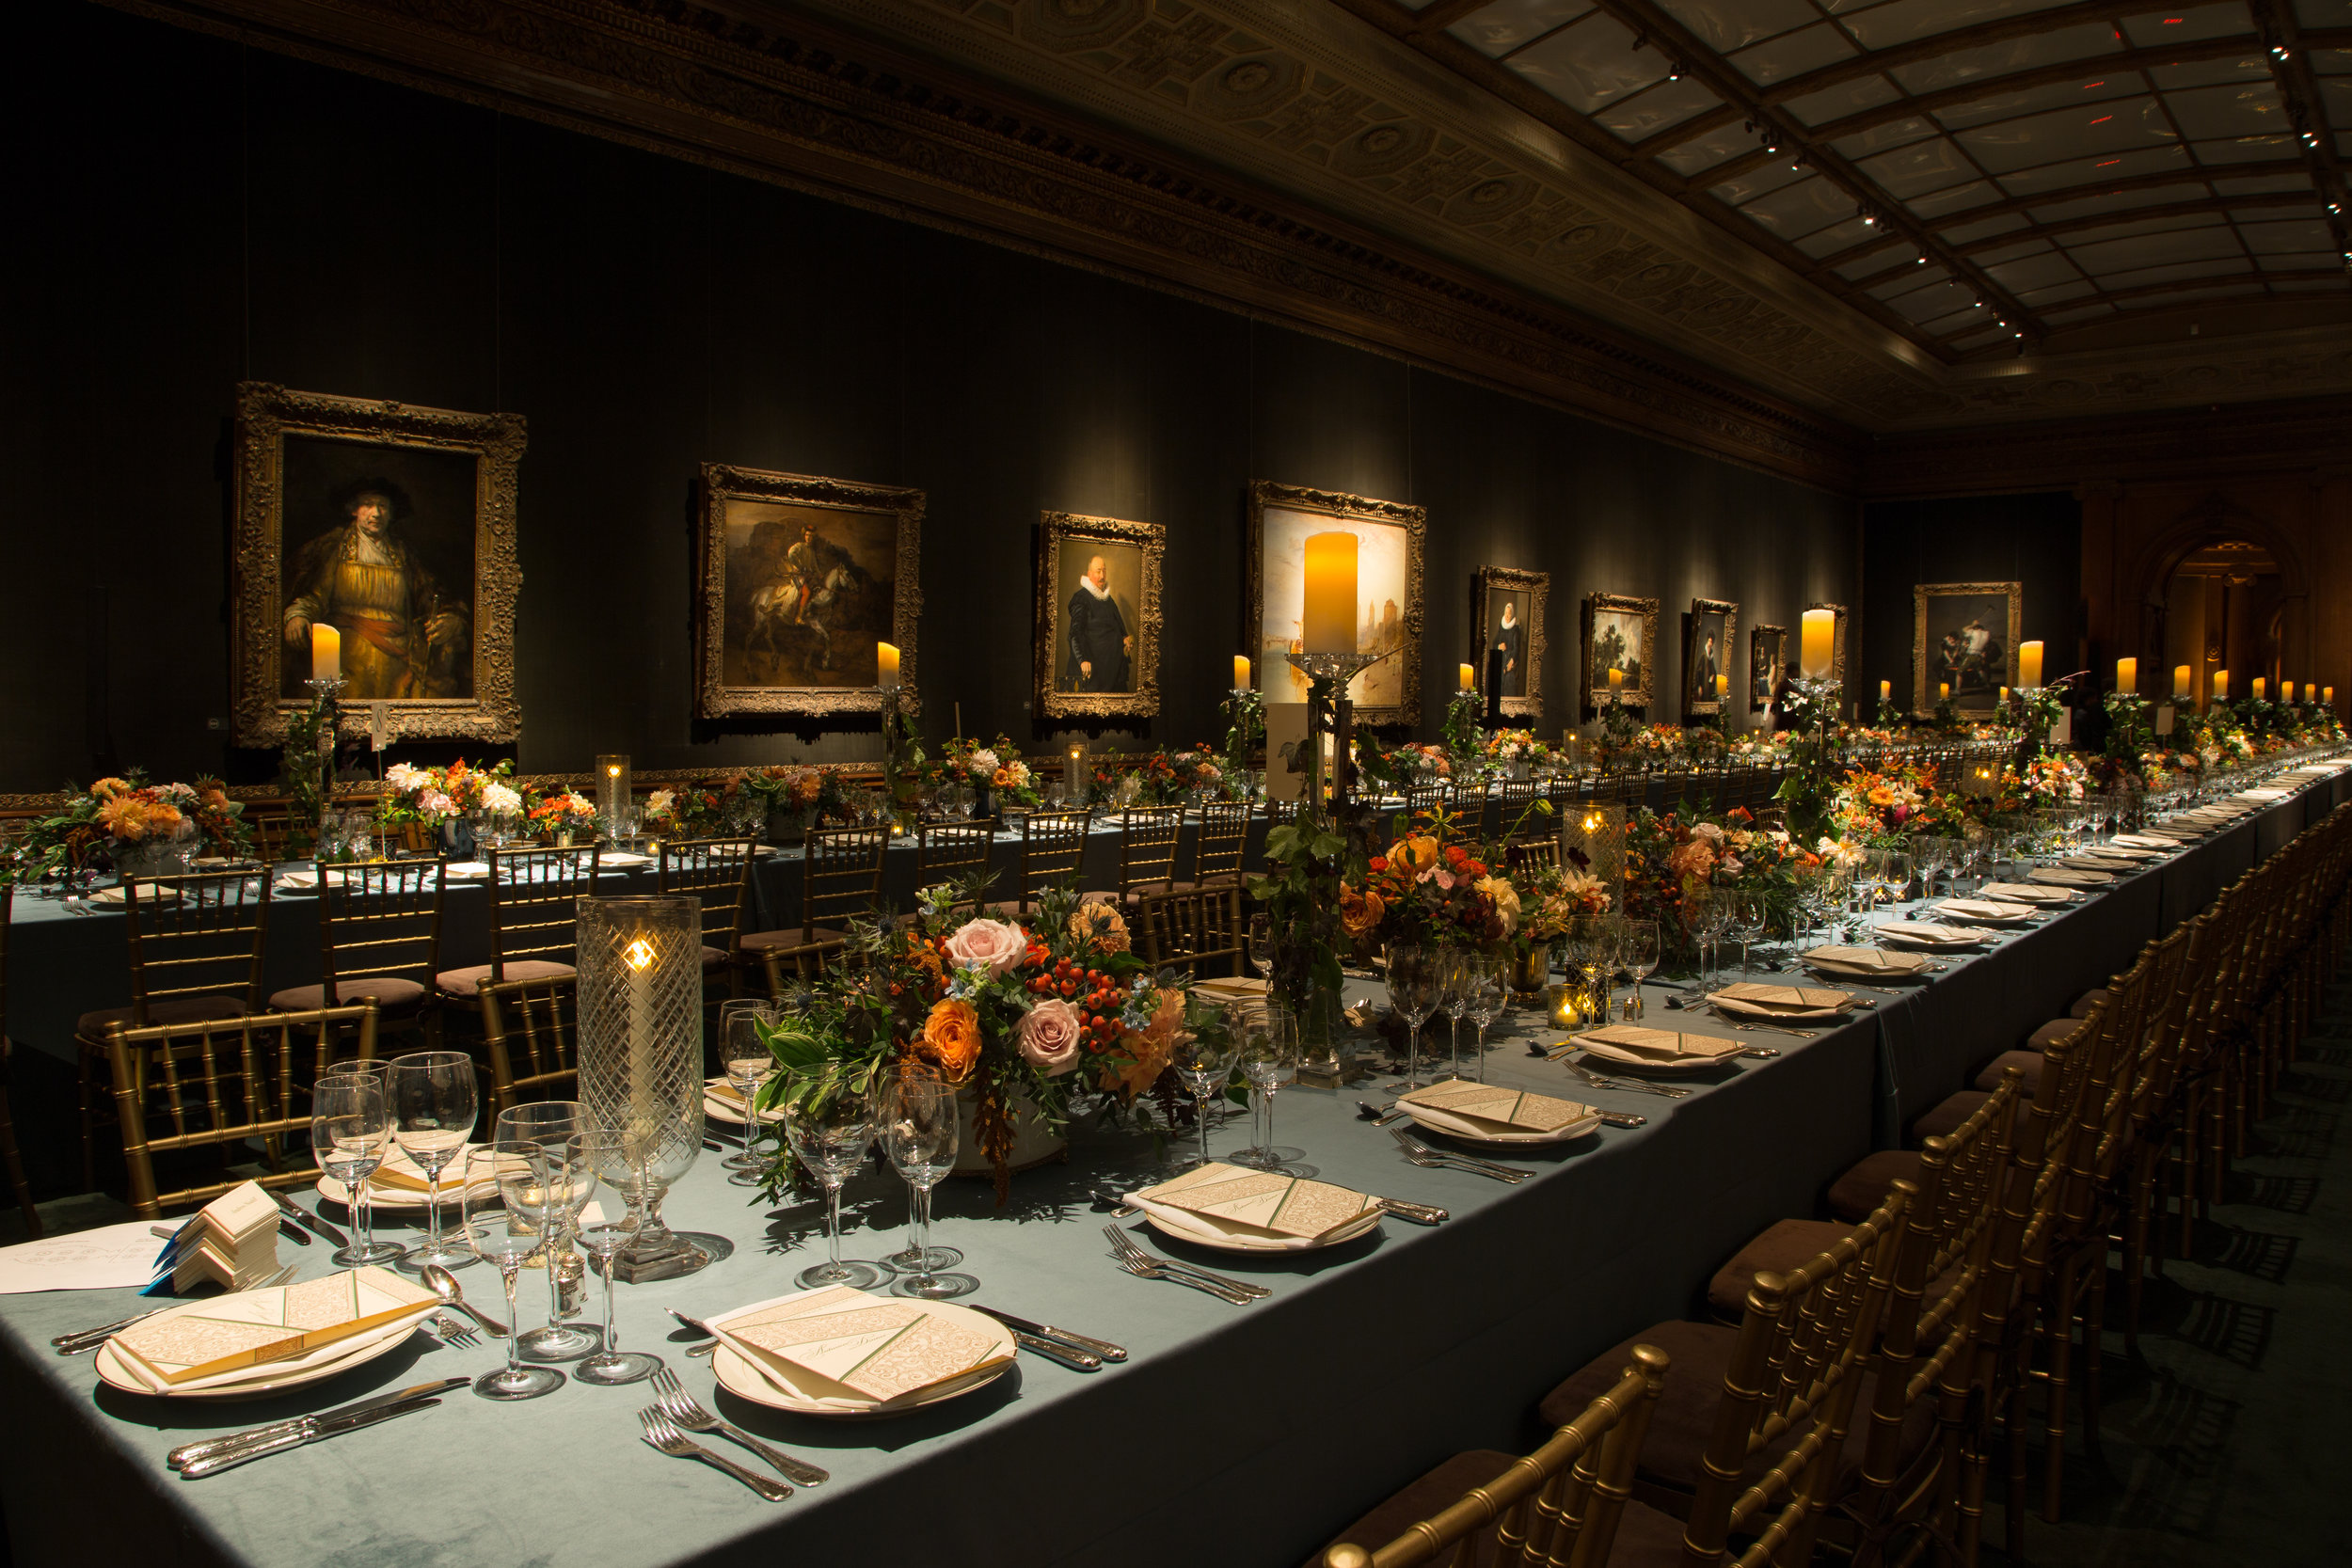 The Frick Collection Autumn Dinner